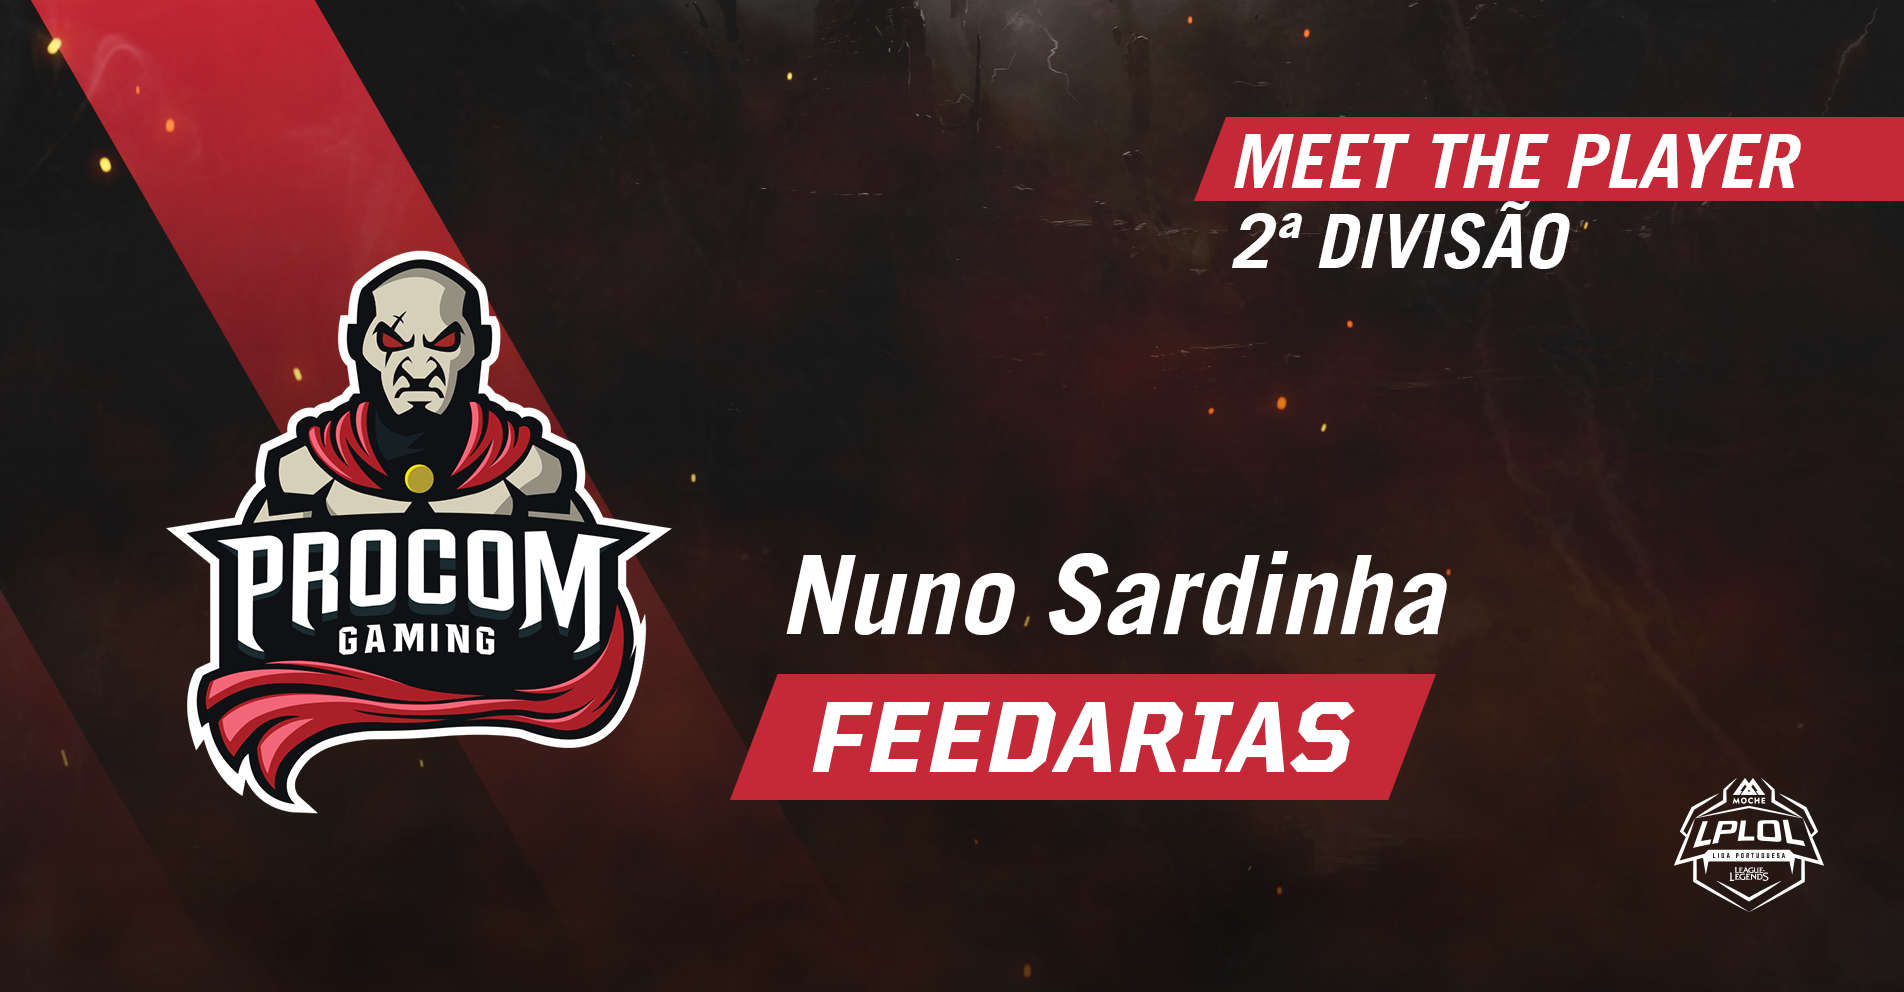 Meet The Players: Feedarias